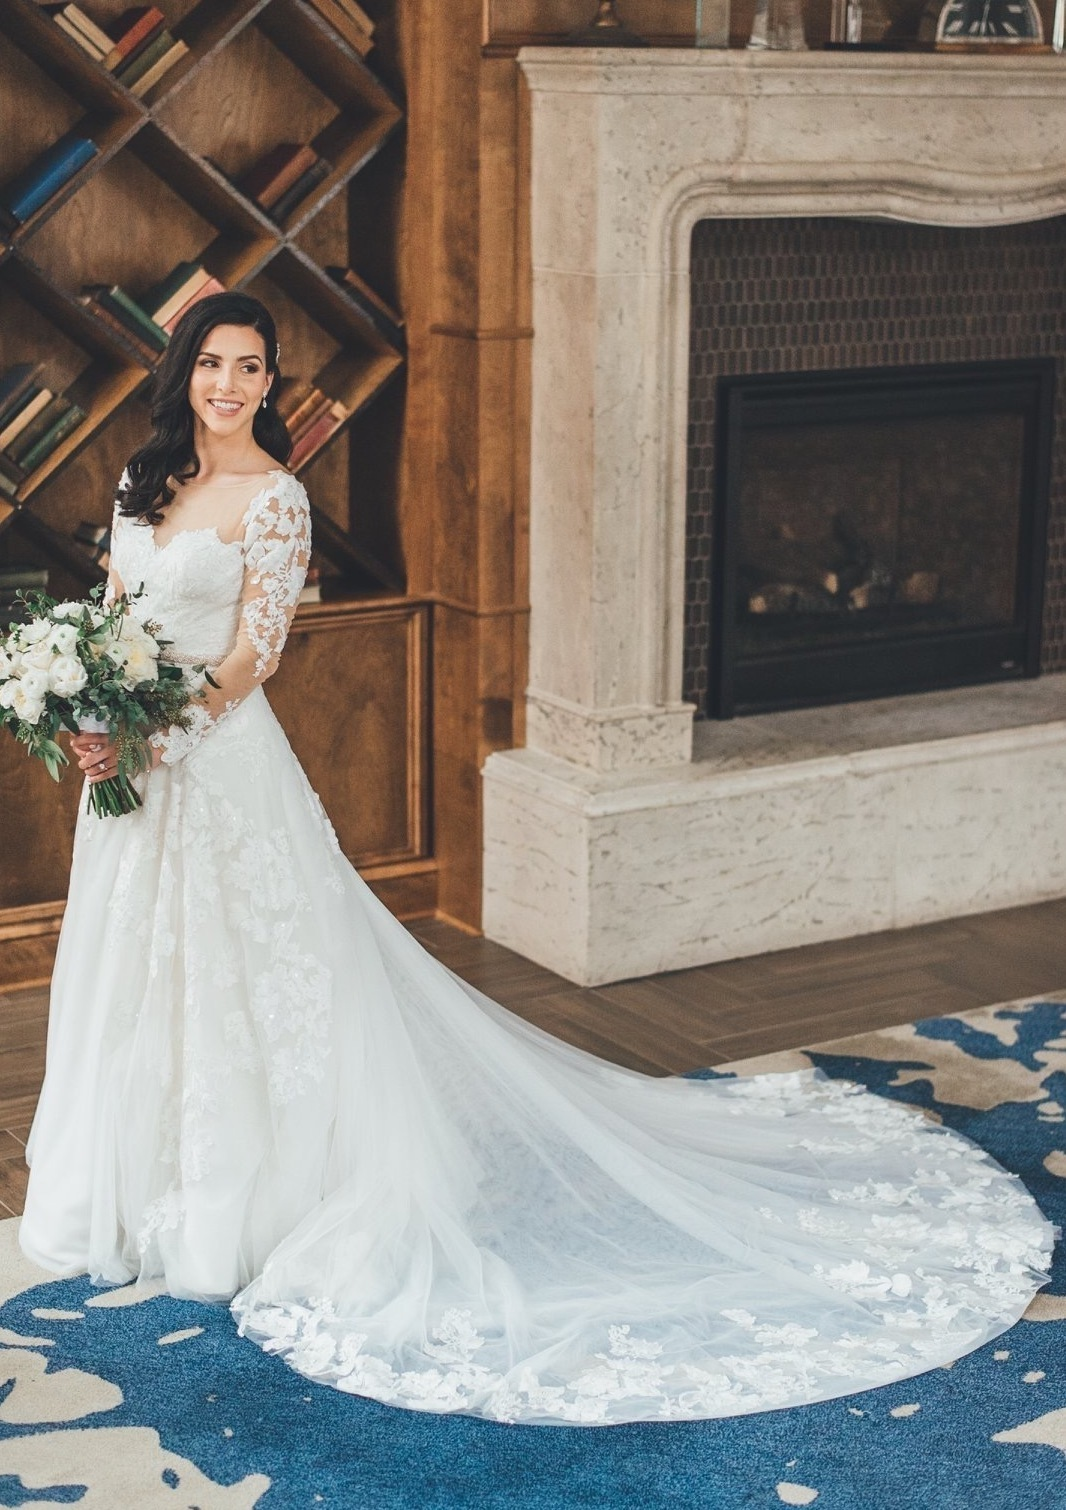 This bride designed a long sleeve lace wedding dress online with Anomalie.